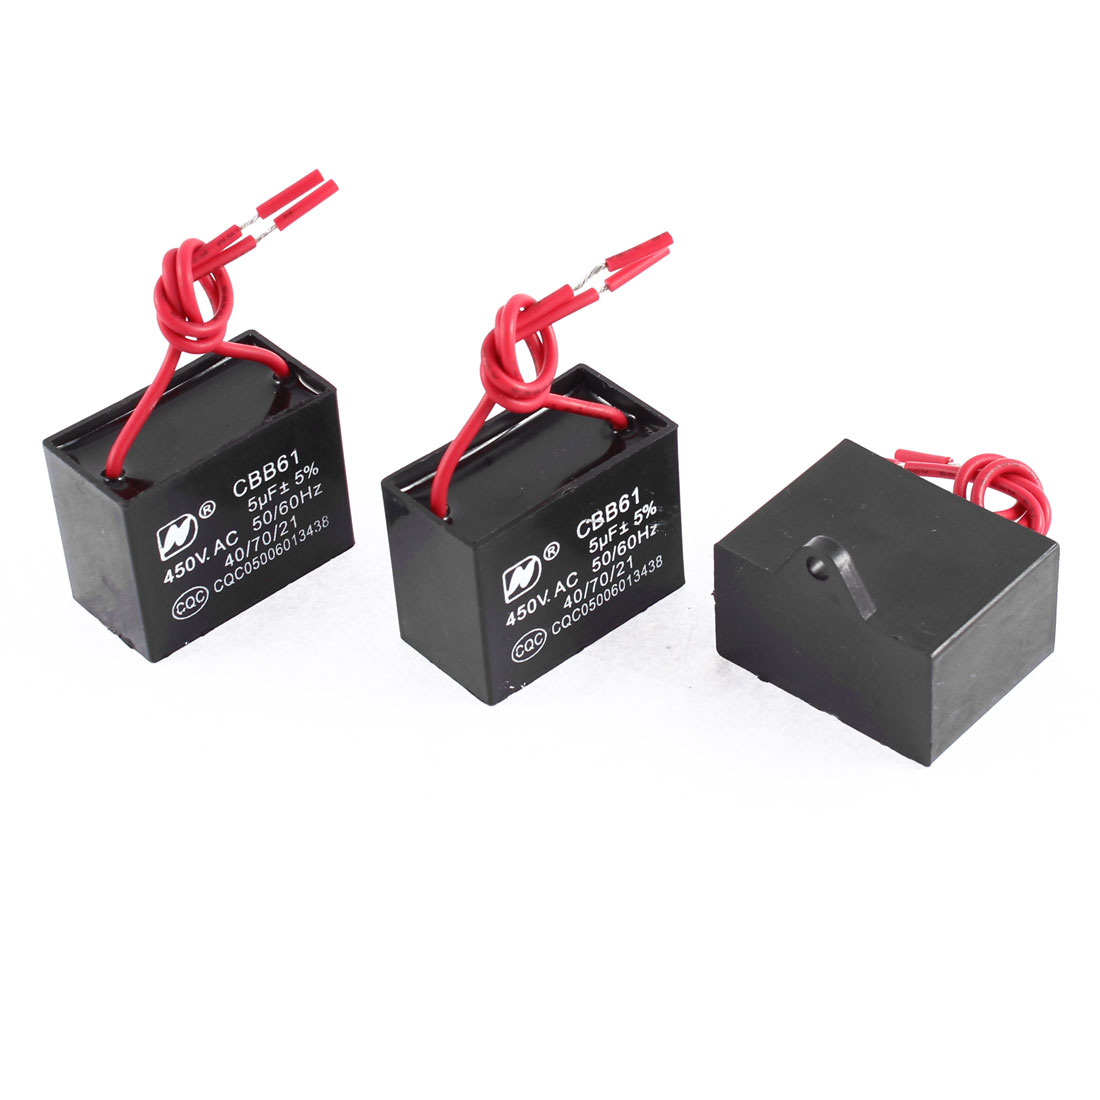 3 Pcs AC 400V 5uF Two Wired Ceiling Fan Motor Run Capacitor CBB61